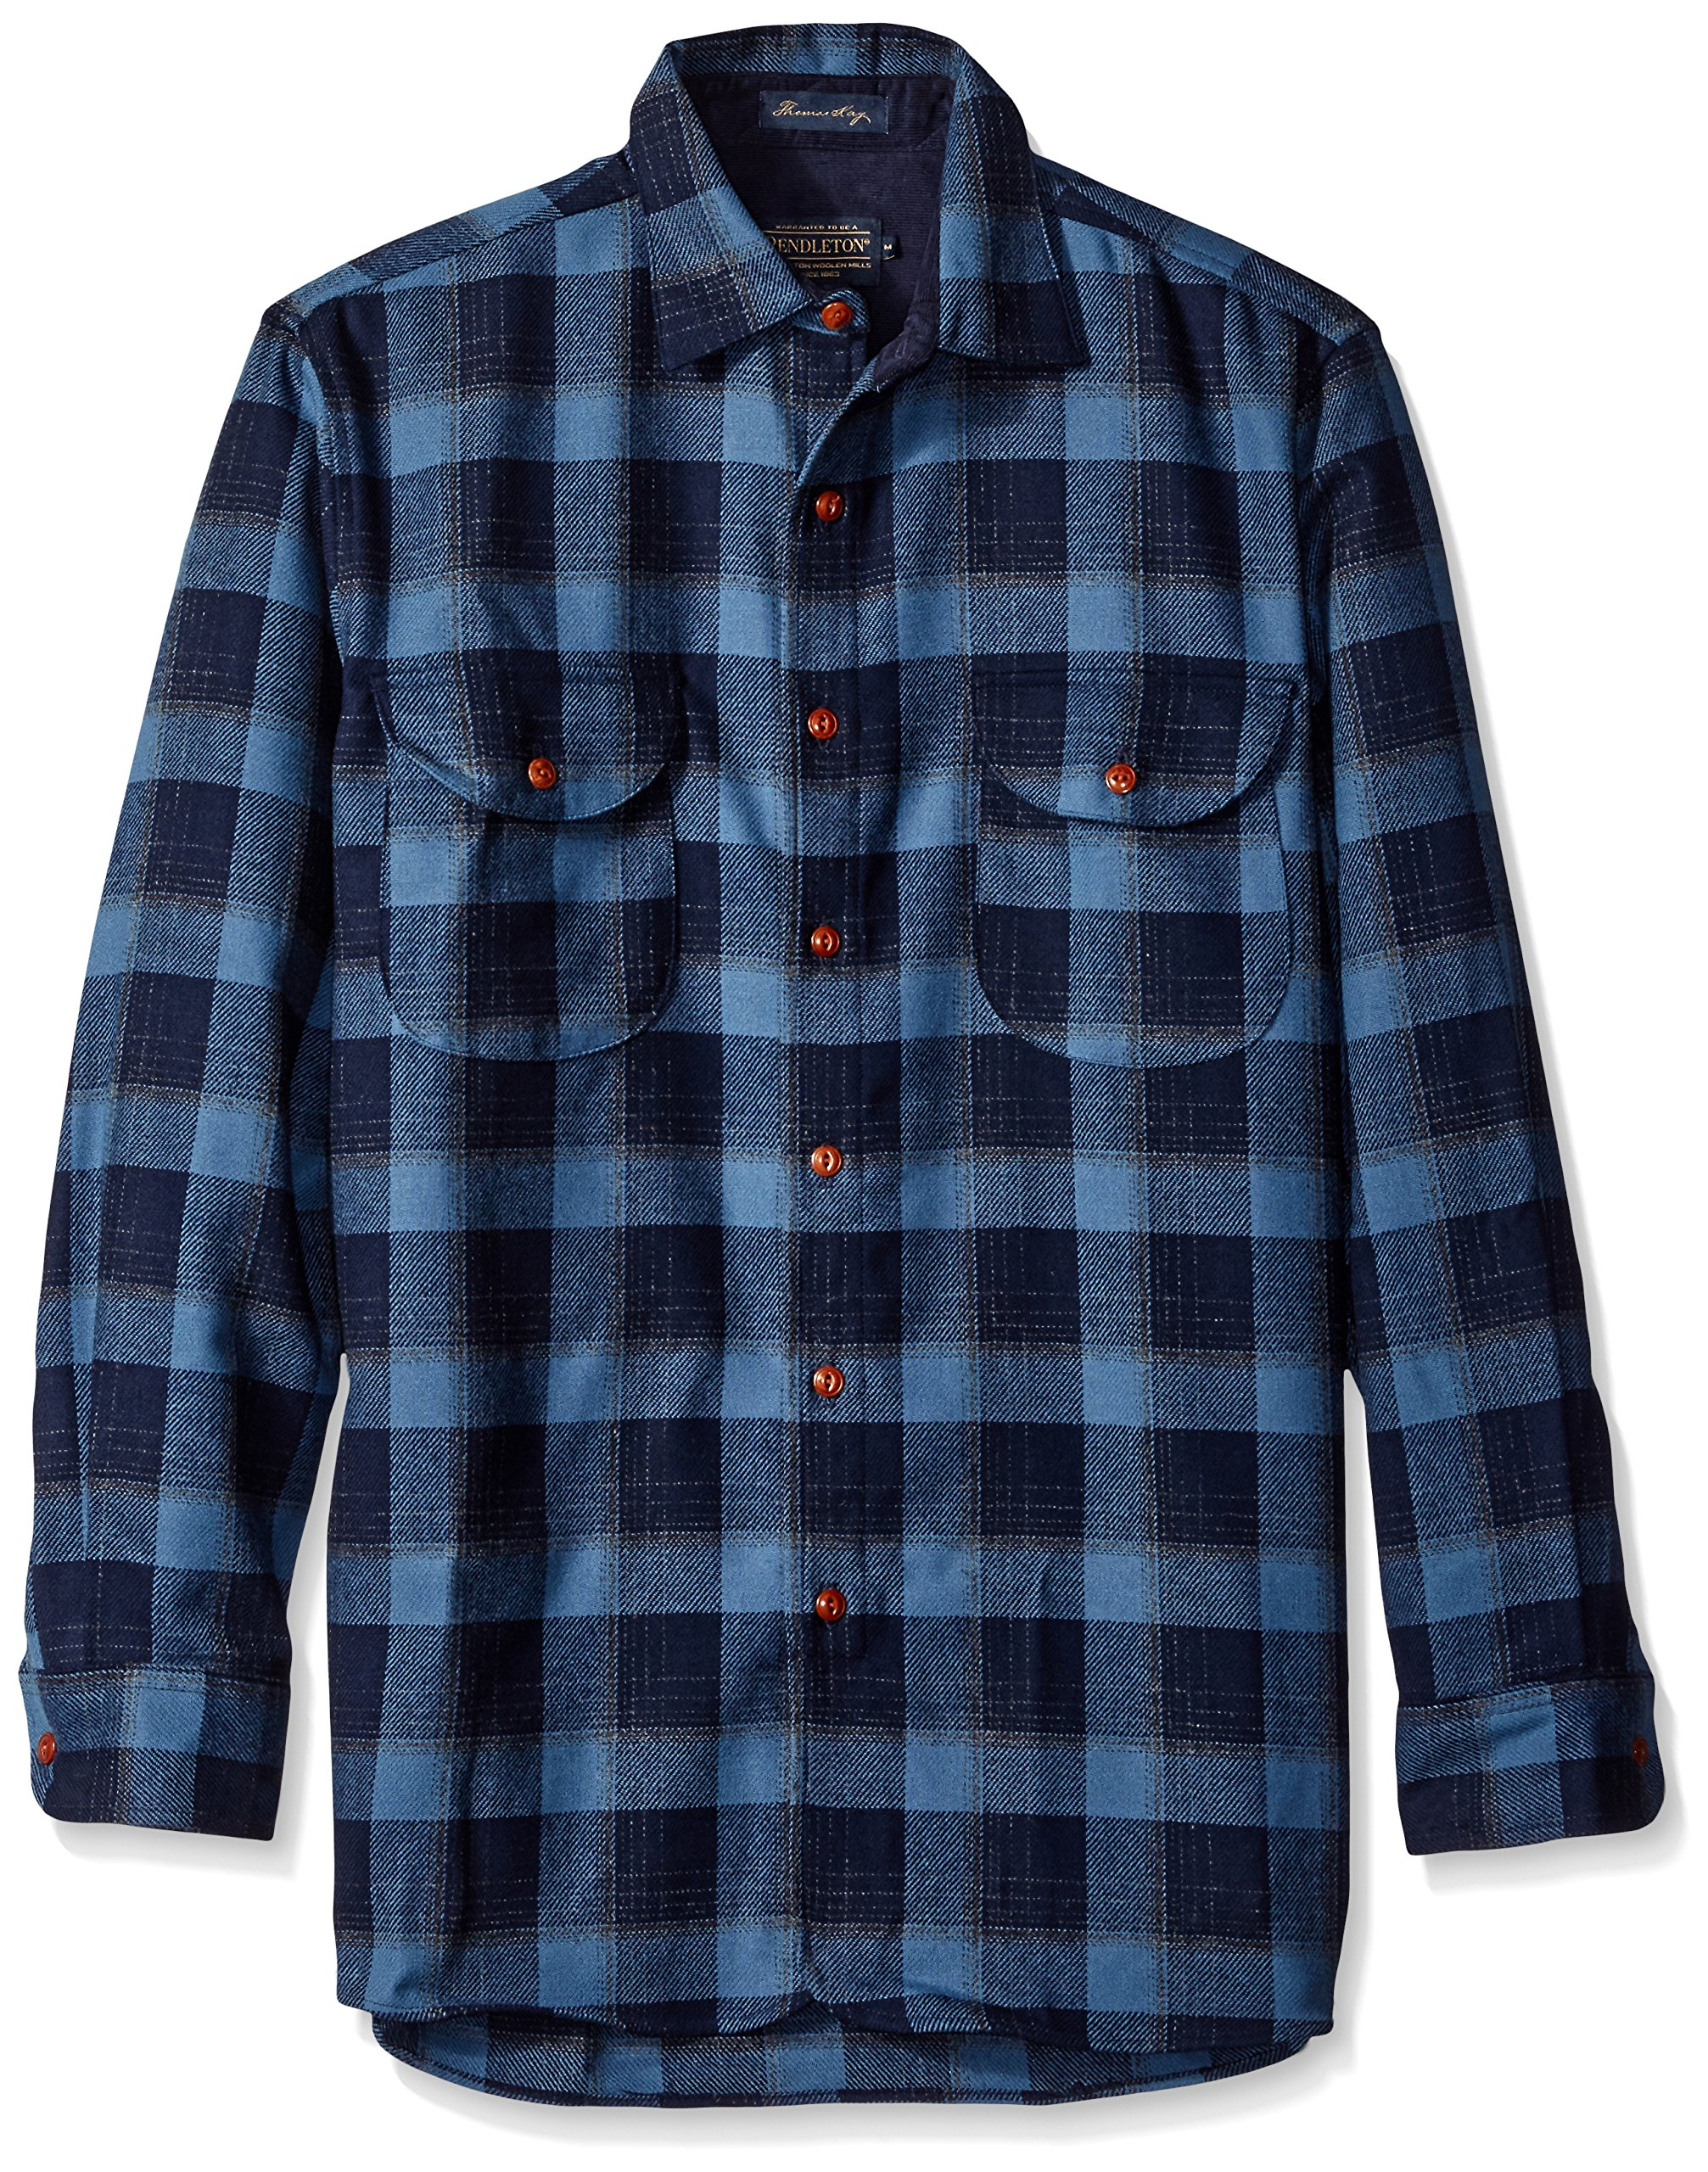 Pendleton Men's Long Sleeve Fitted Buckley Shirt, Navy/Blue Plaid-31837, XXL